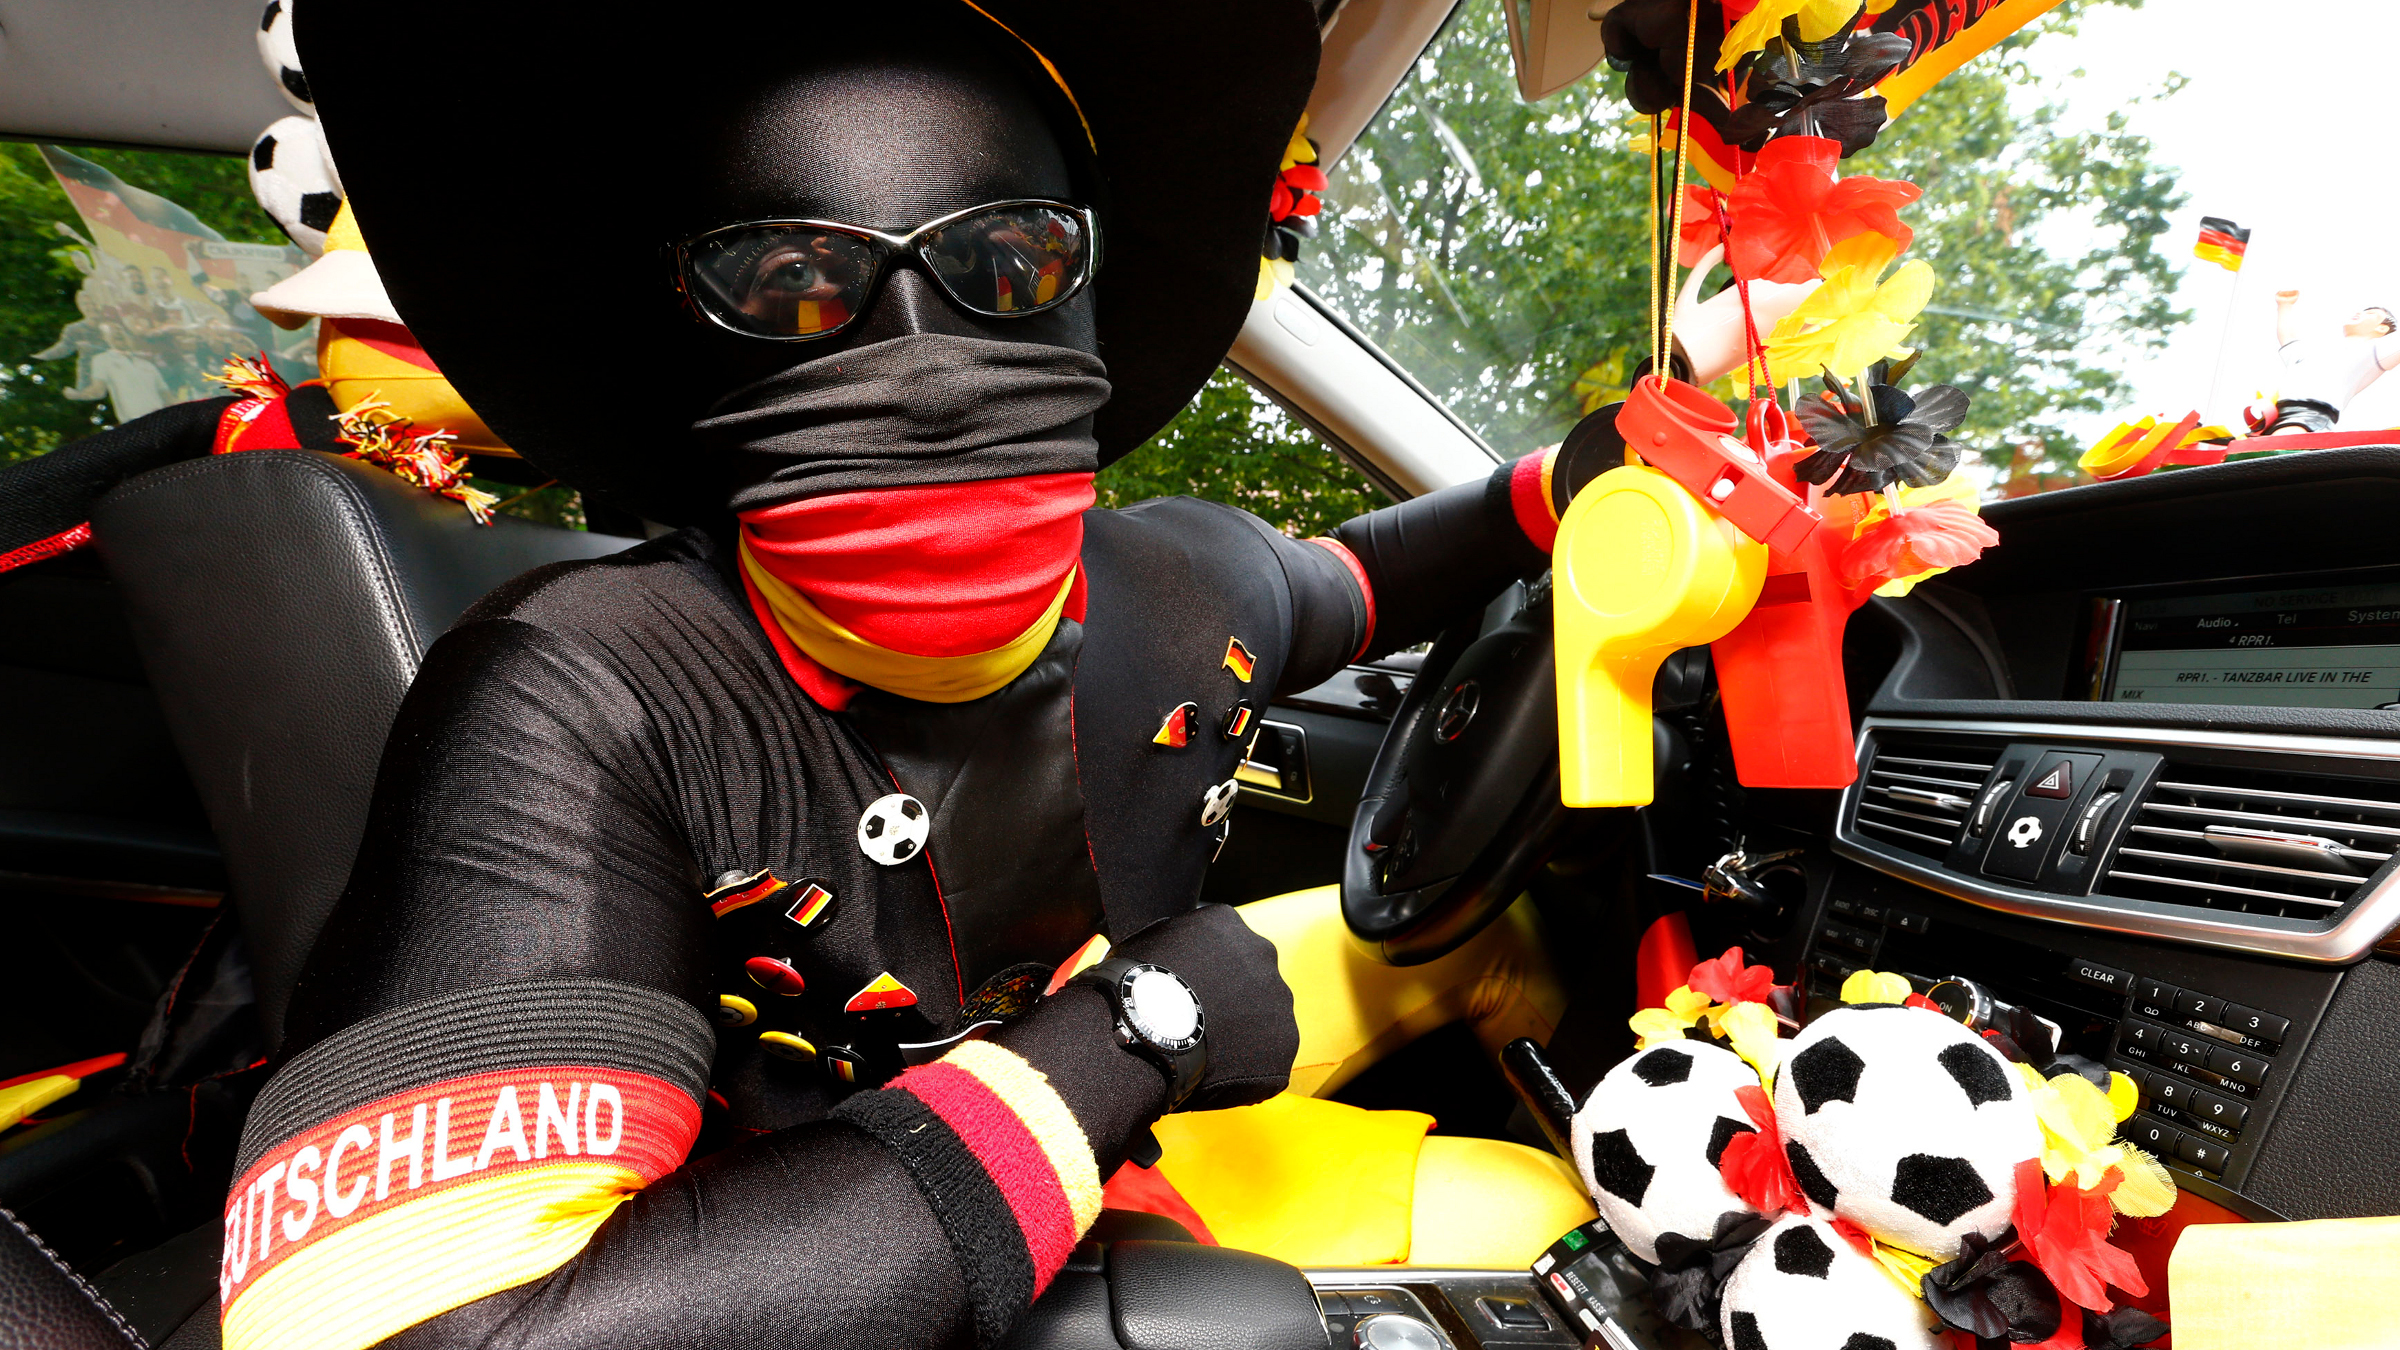 Marcel Klingbiel, a taxi driver and fan of the German national soccer team, poses in his decorated taxi in Ramstein July 6, 2014.